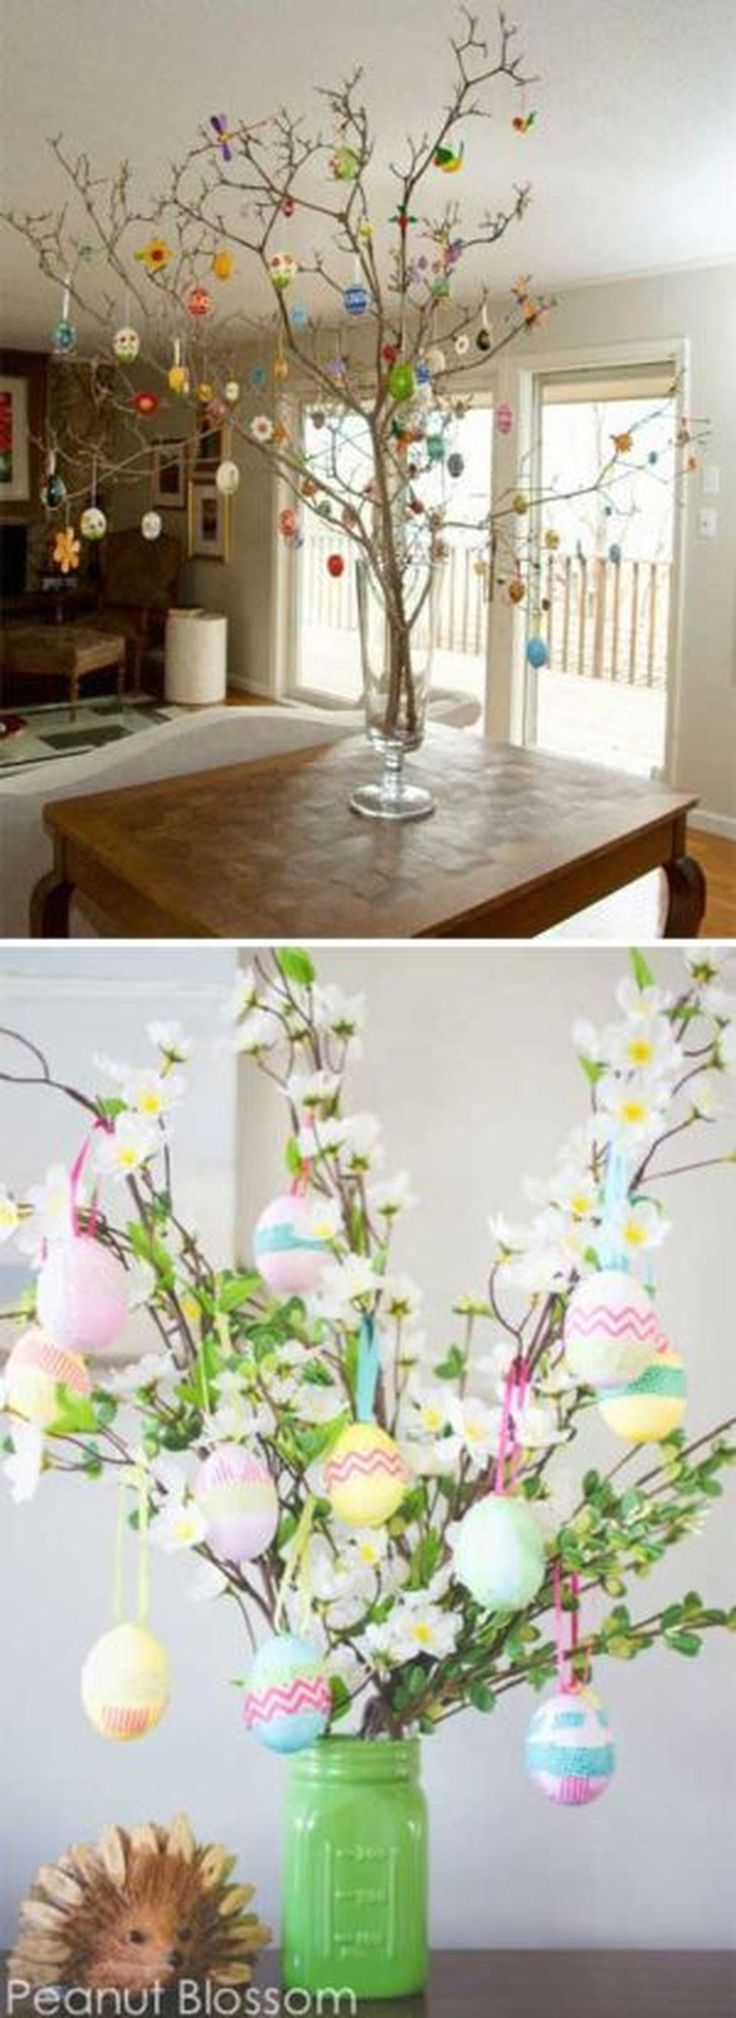 2641 best Home Decorations images on Pinterest